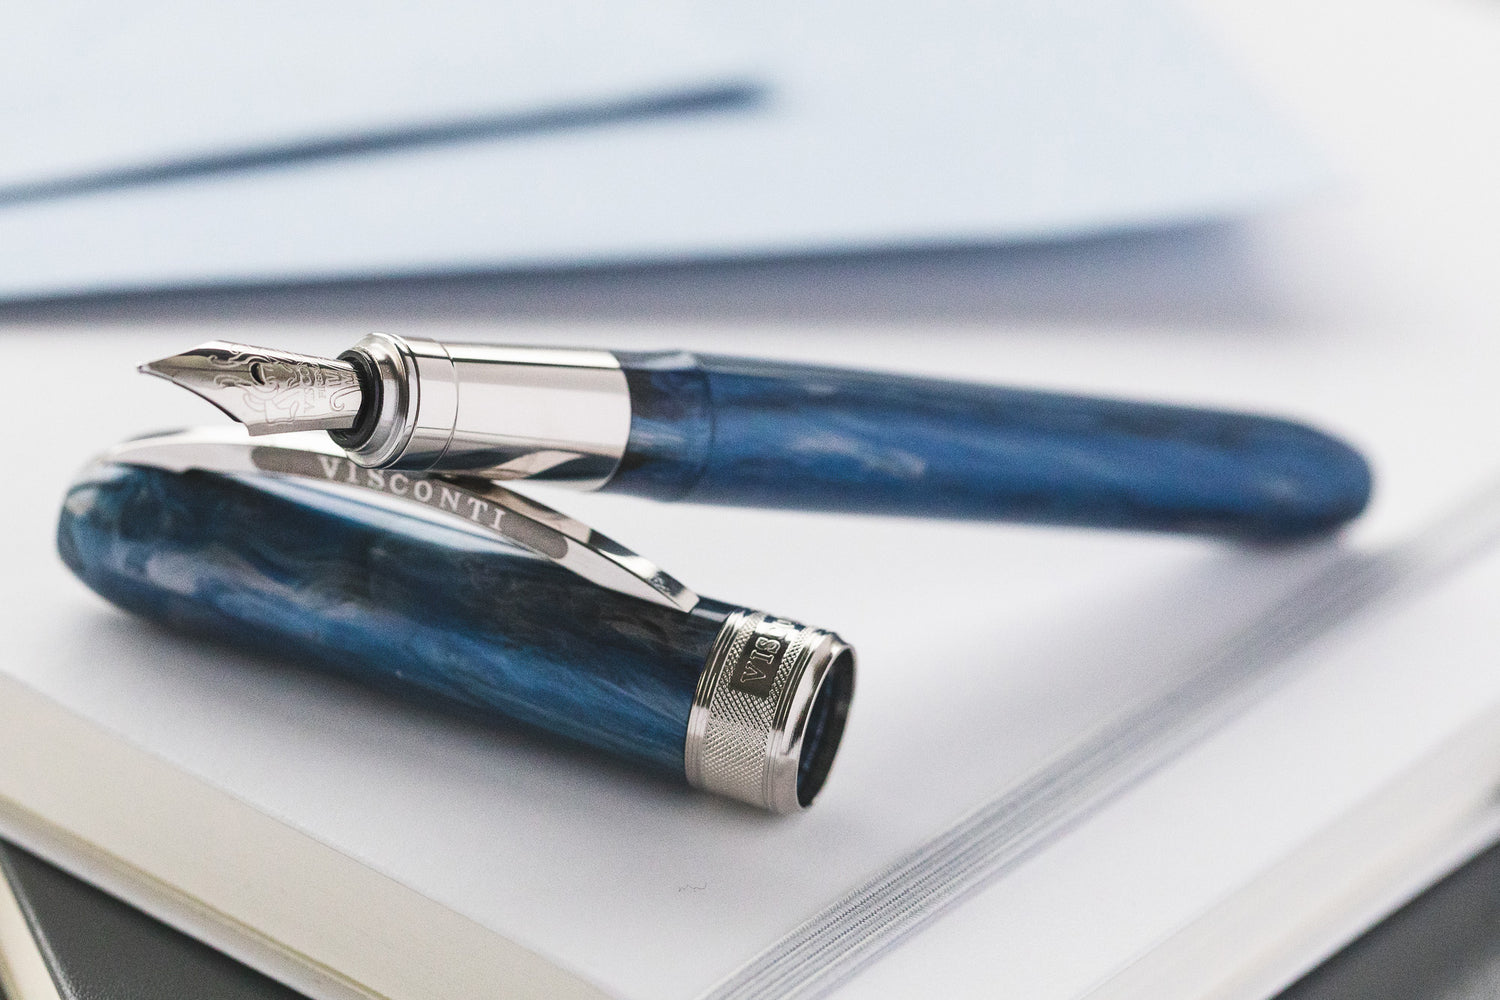 Visconti Rembrandt Fountain Pen - Blue Fog